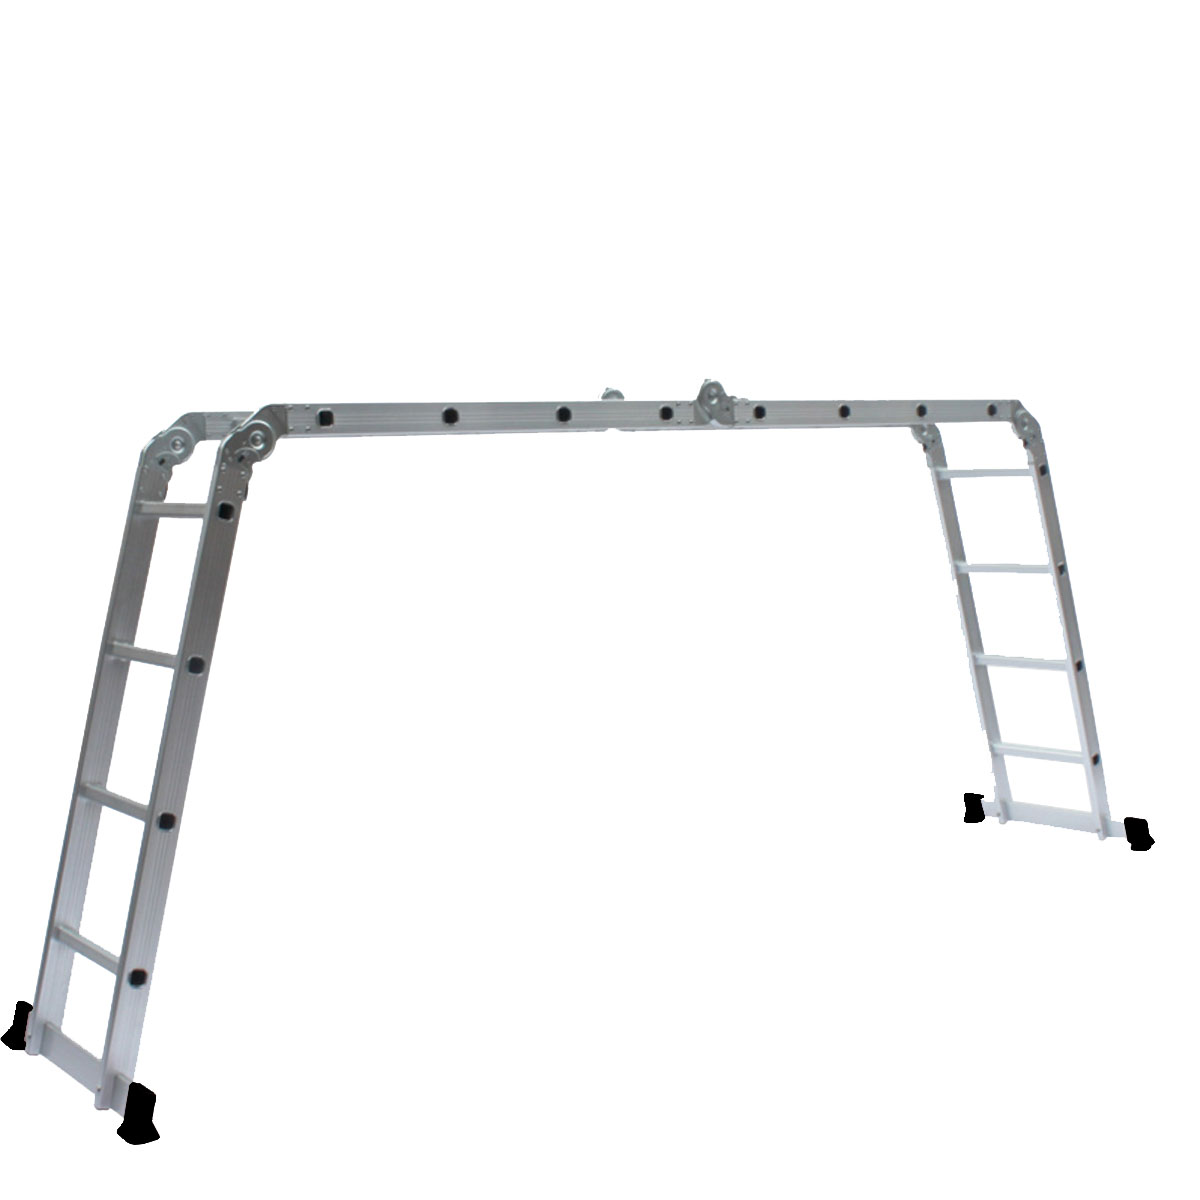 4.7M Multipurpose Aluminum Alloy Ladder 4Fold x 4Steps Ladder Scaffold Extendable